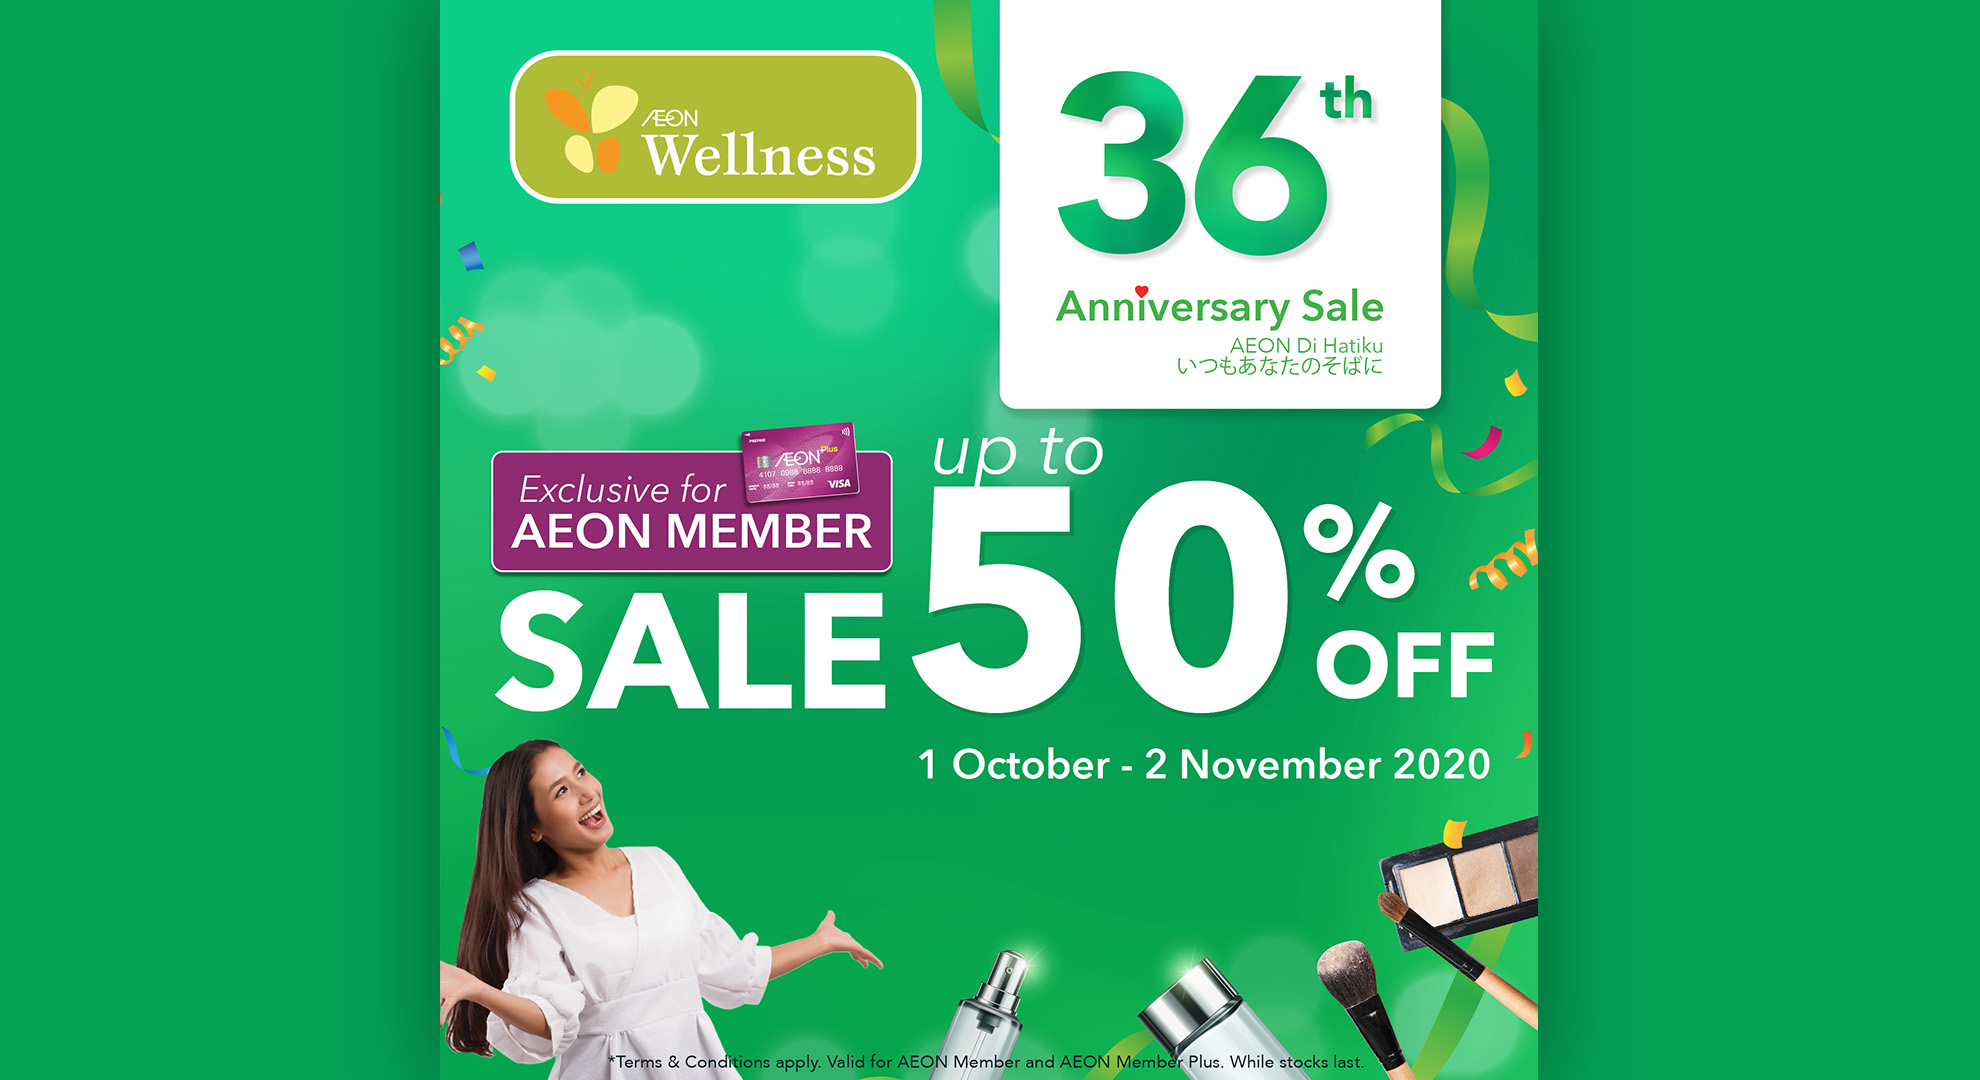 km_website_slider_new_aeon_021020